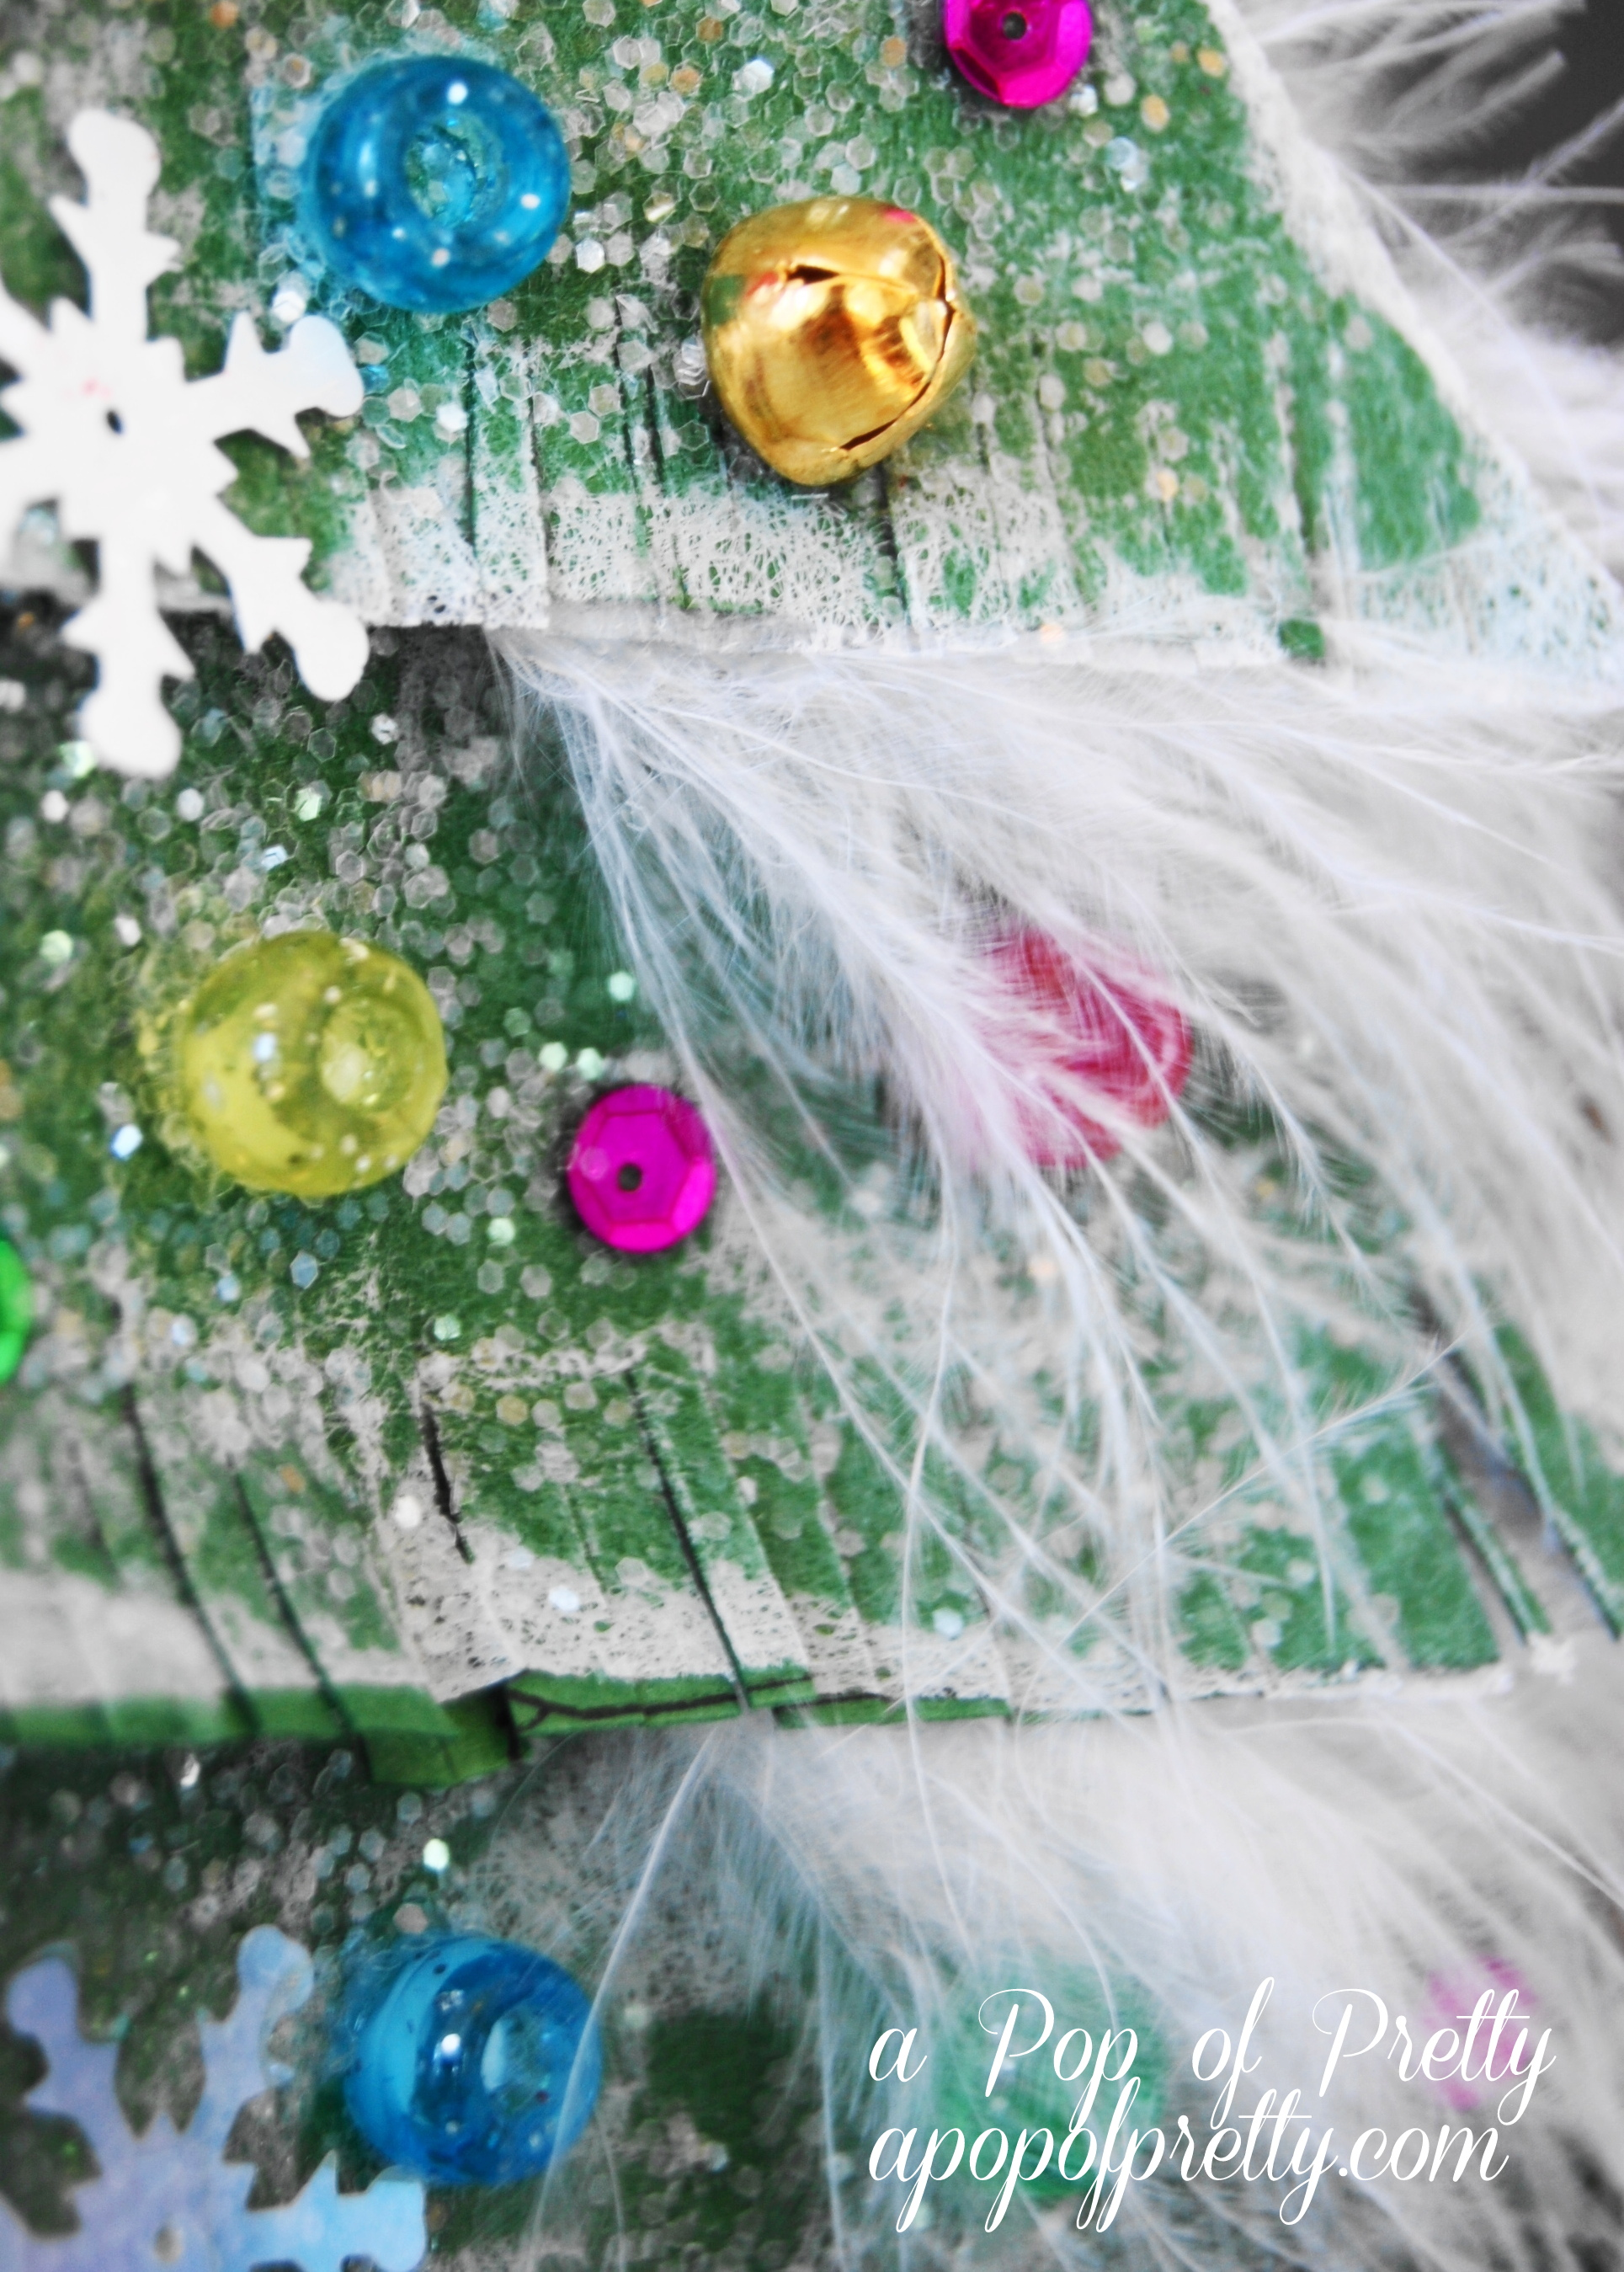 Christmas Craft Ideas for Kids: Sparkly Christmas Tree from Recycled Materials!